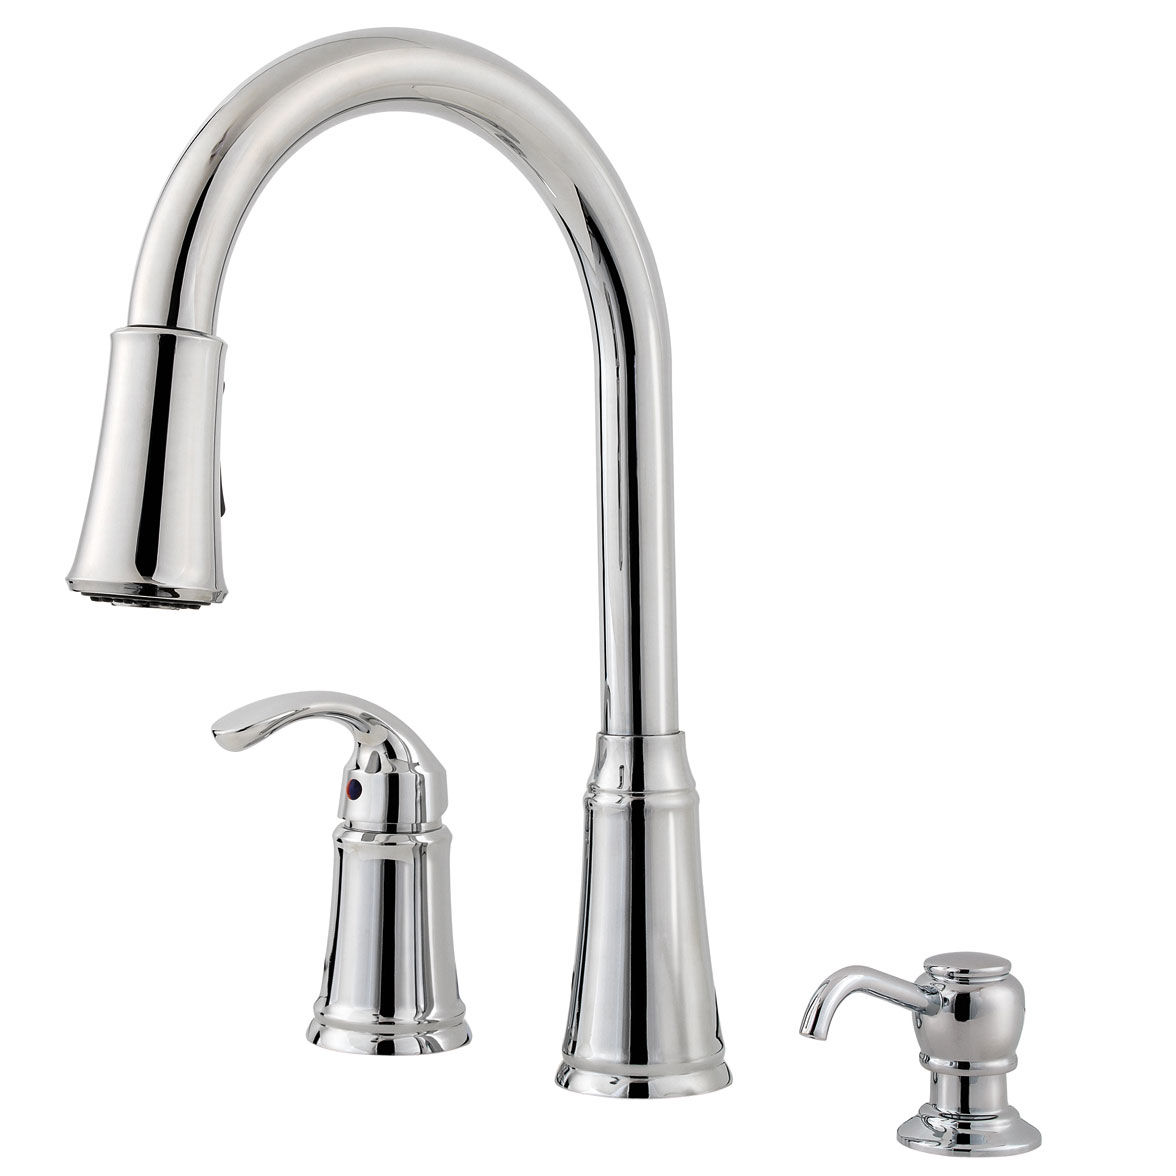 Pfister f wkp 650c polished chrome classic pullout spray professional kitchen faucet with soap dispenser faucetdirect com